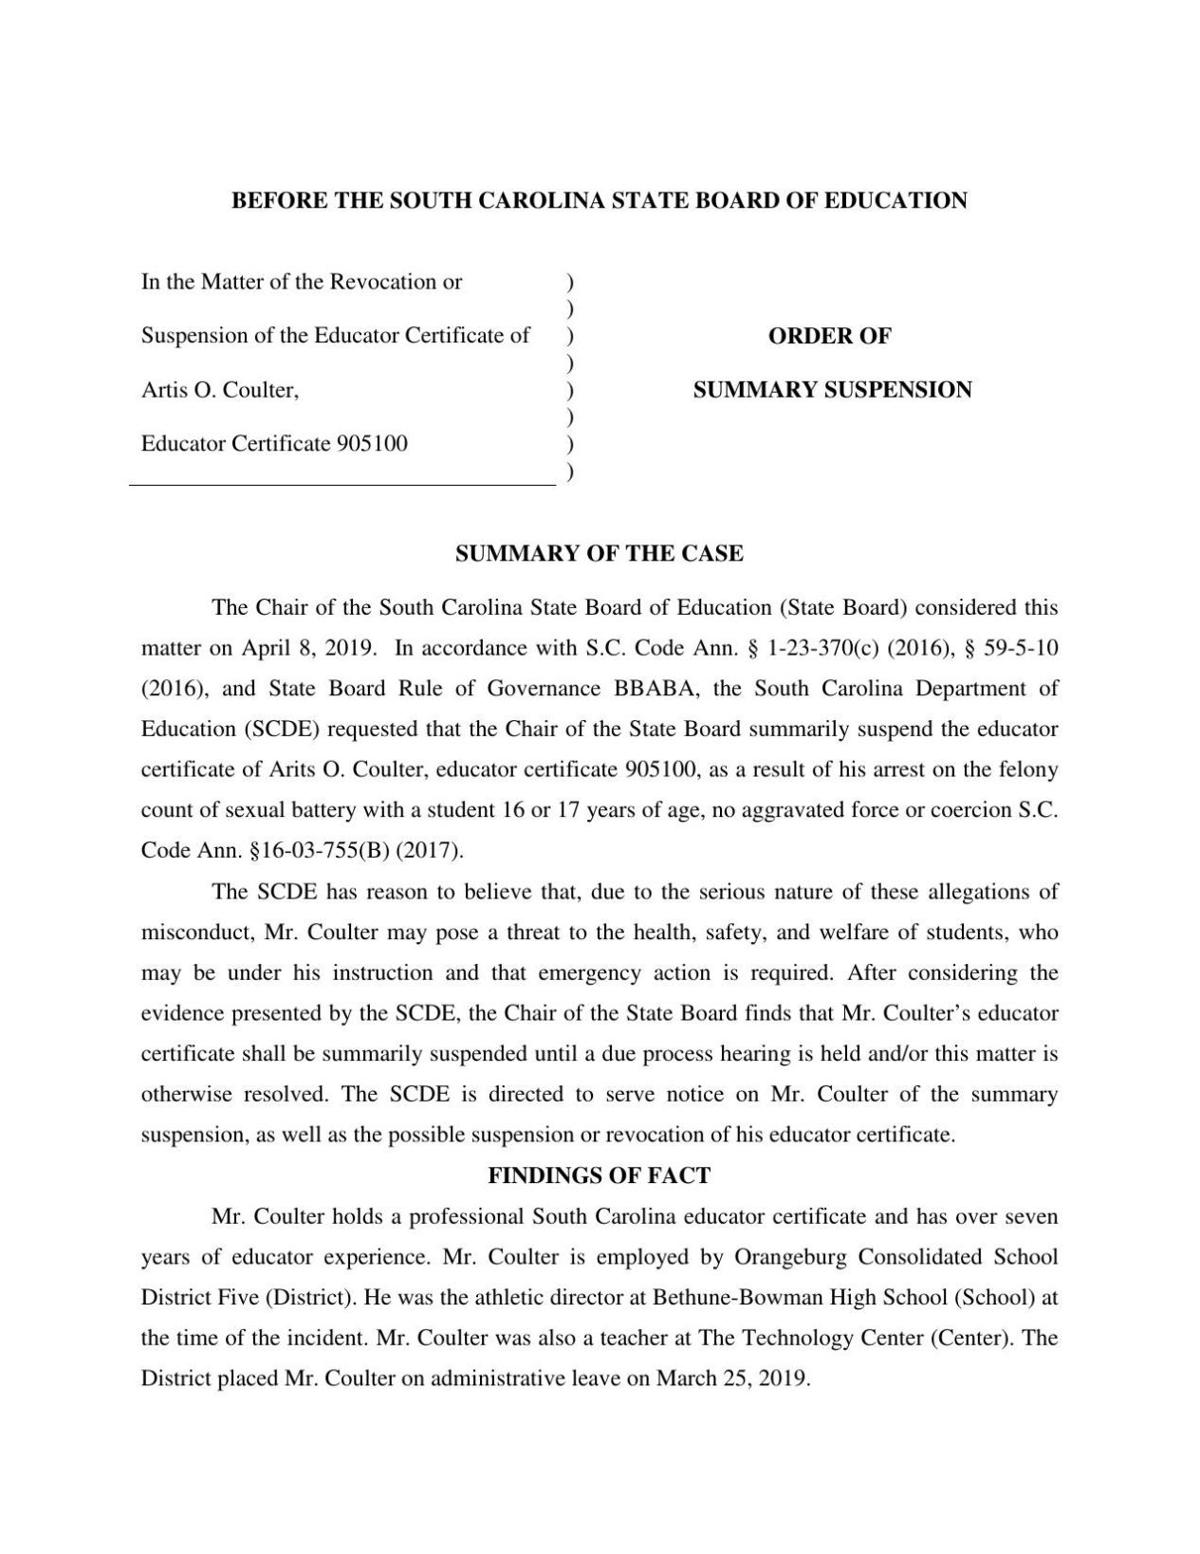 Coulter-Artis-O order of suspended teaching certificate